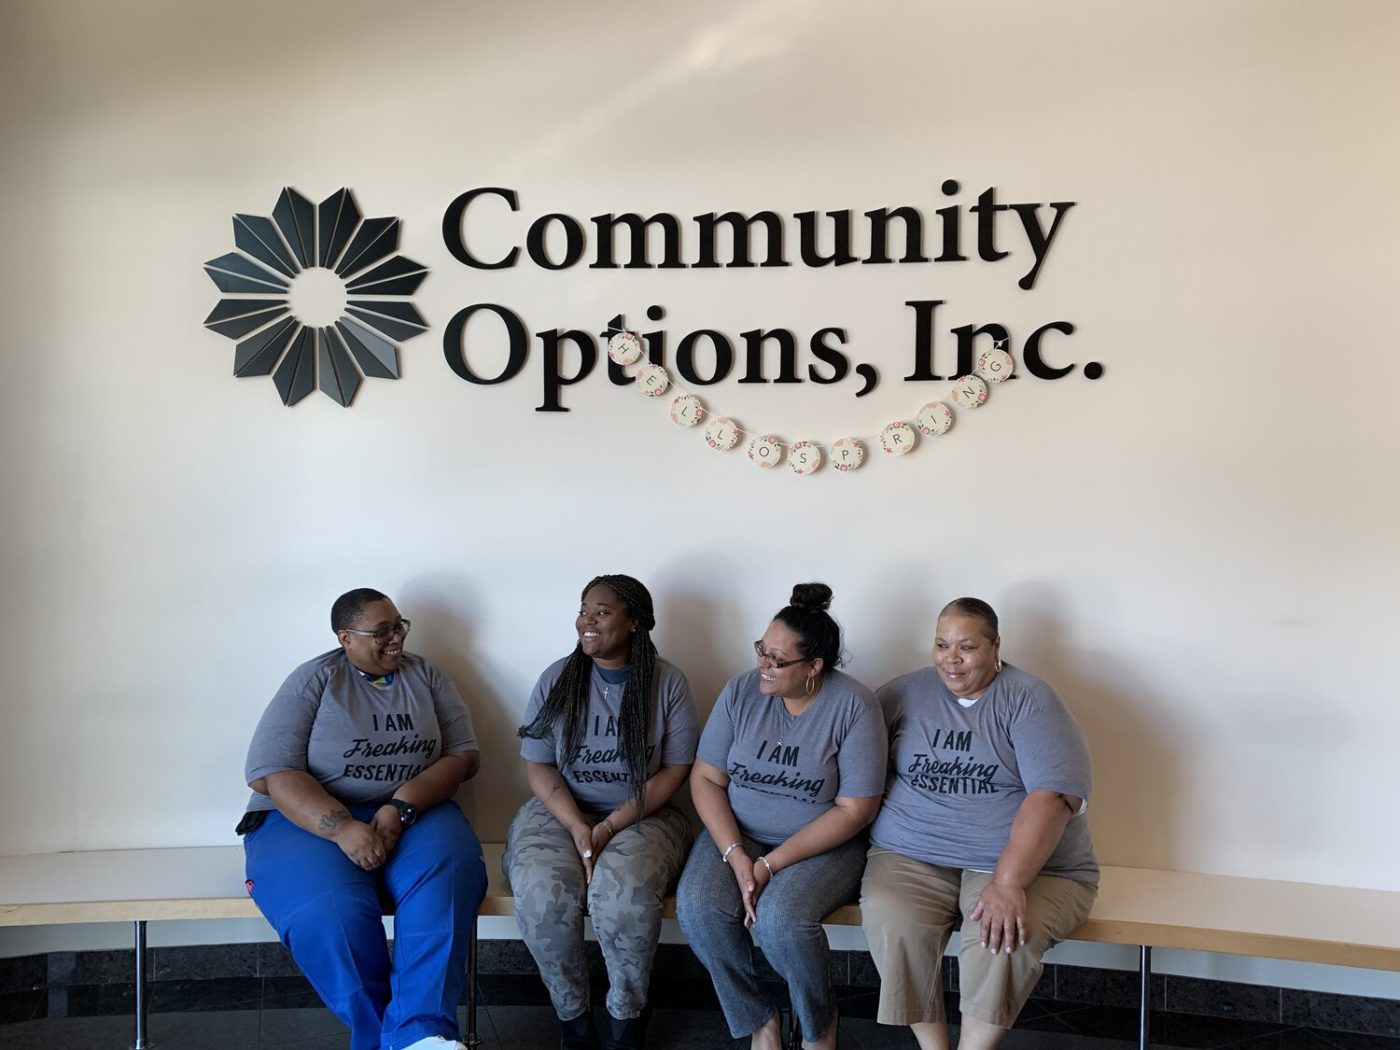 Essential personnel at Community Options, Inc. continue to provide daily service to their clients. - PHOTOS BY JAN OSBORN